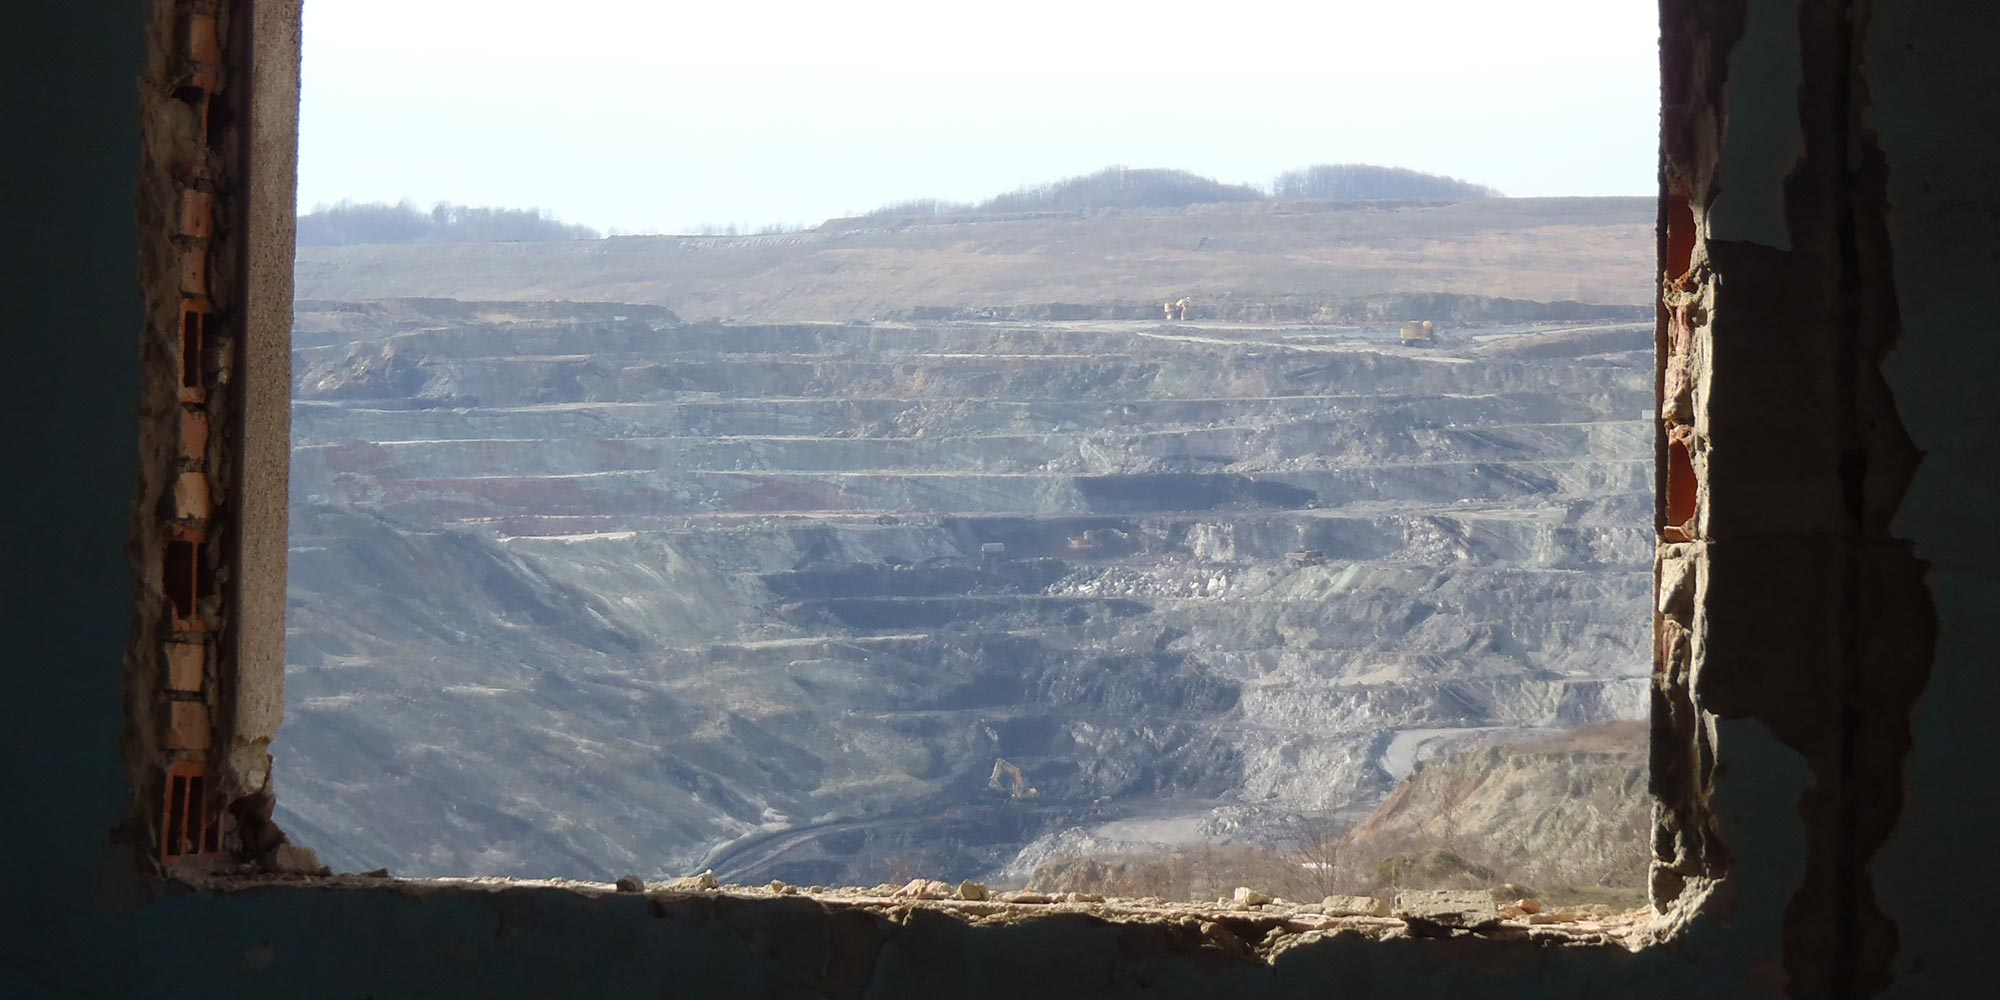 An open pit mine seen through the window of a demolished building.